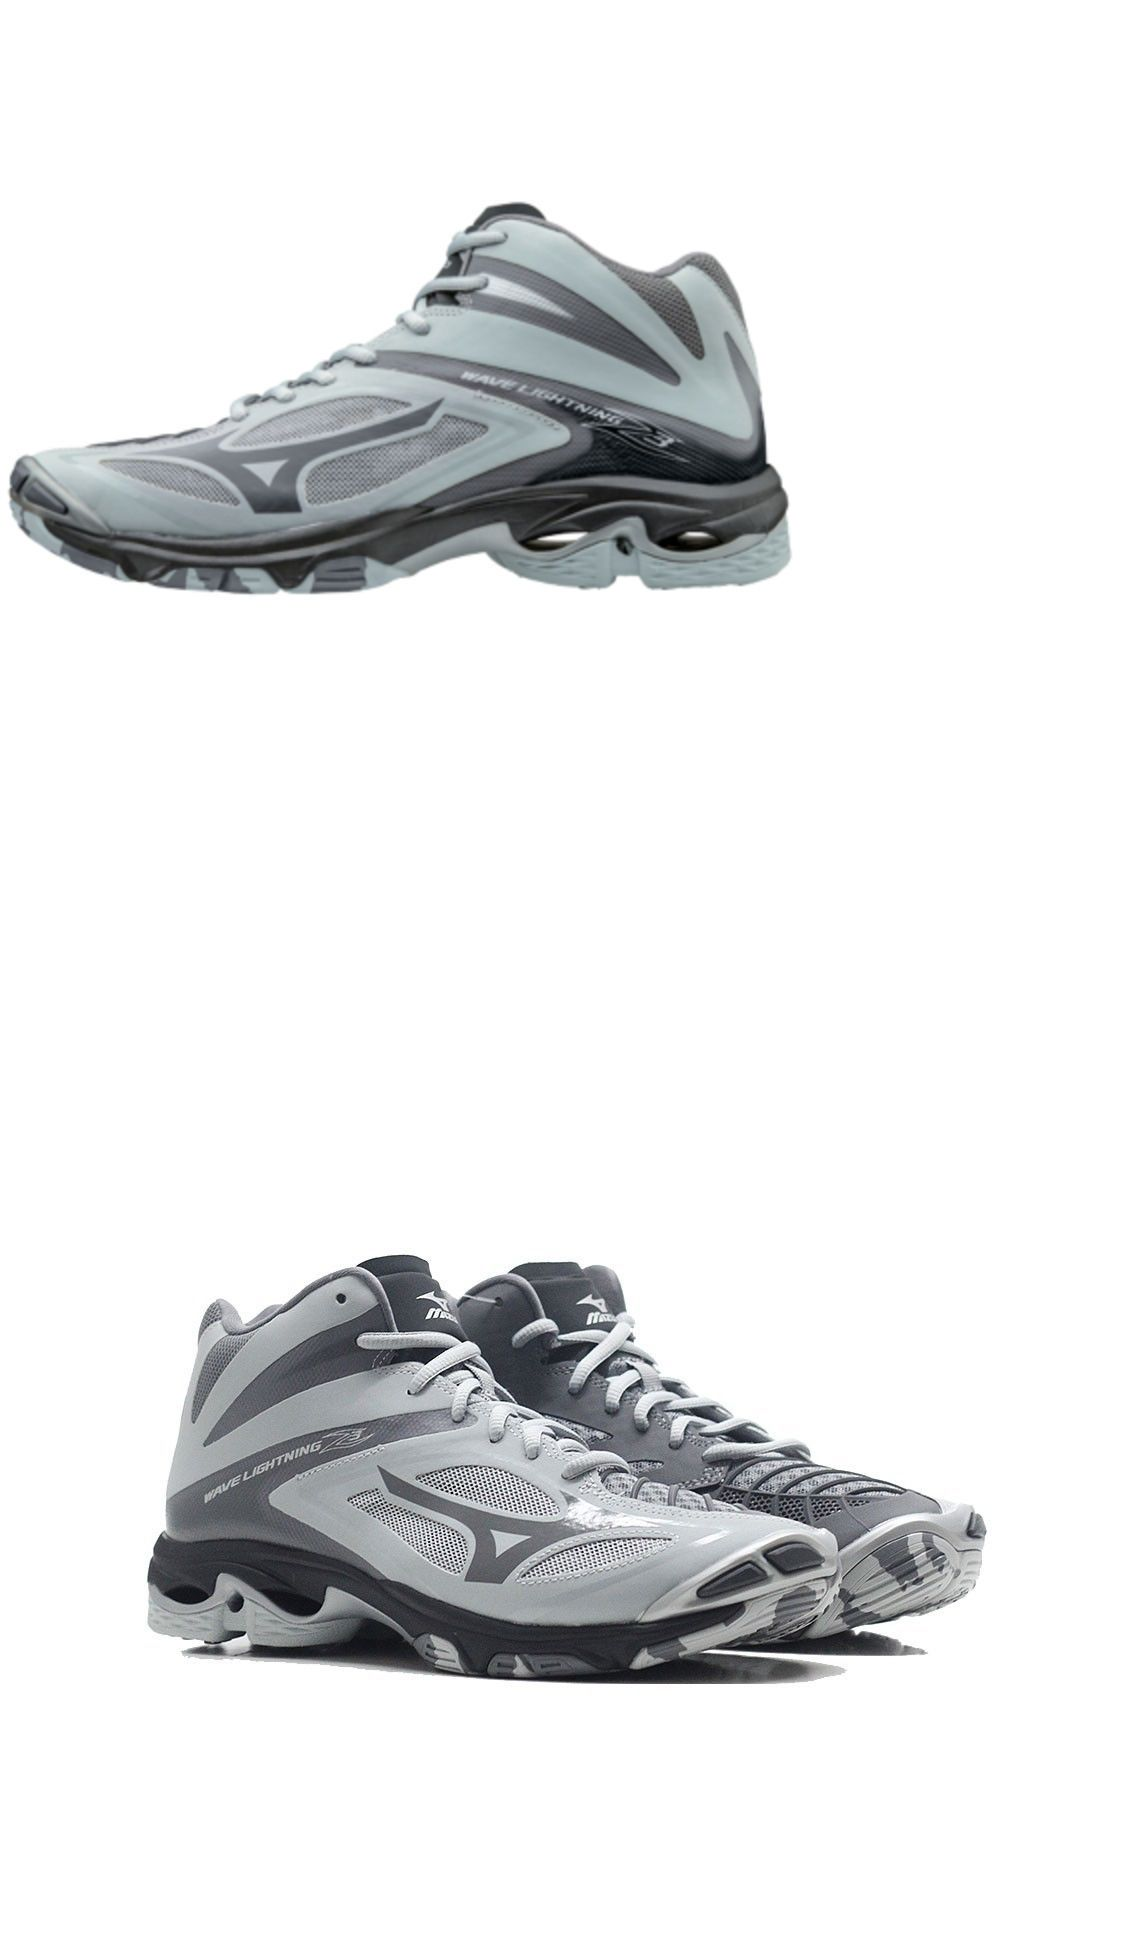 Clothing 159130 New 2017 Mizuno Wave Lightning Z3 Mid Mens Volleyball Shoes Grey Buy It Now Only 1 Volleyball Shoes Mens Volleyball Shoes Mens Volleyball